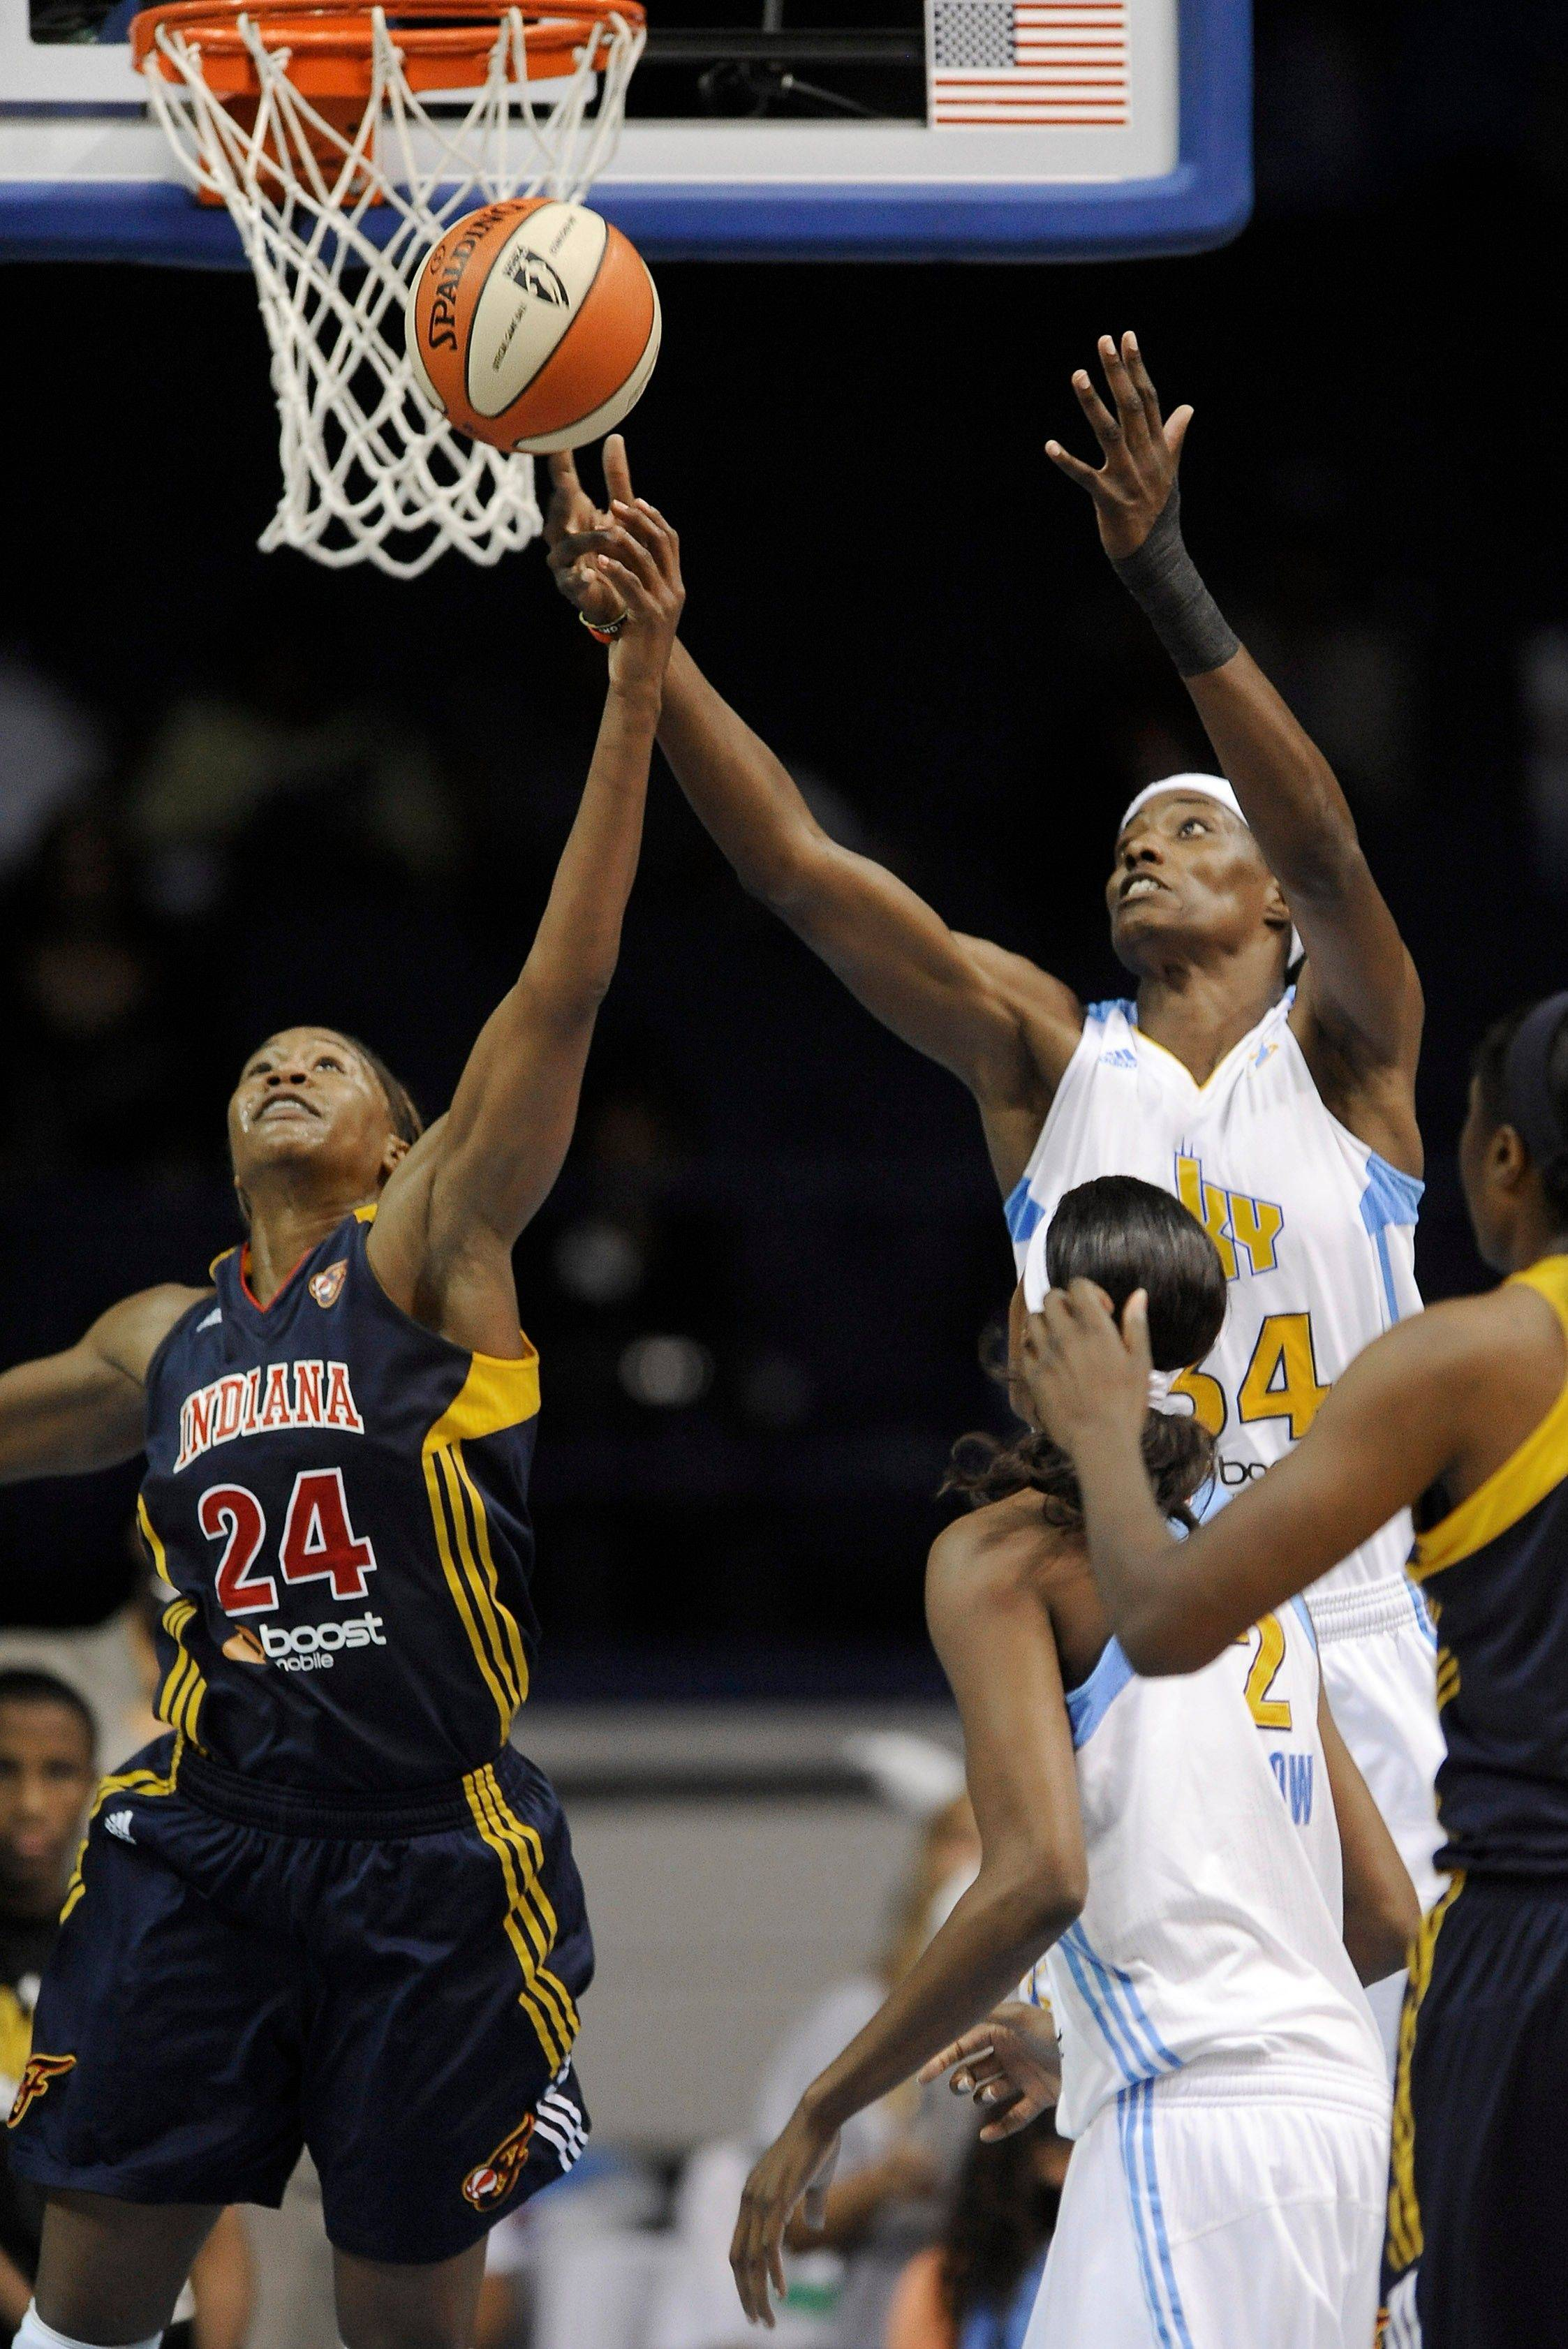 The Fever's Tamika Catchings, left, battles the Sky's Sylvia Fowles for a rebound in the third quarter Sunday at the Allstate Arena.